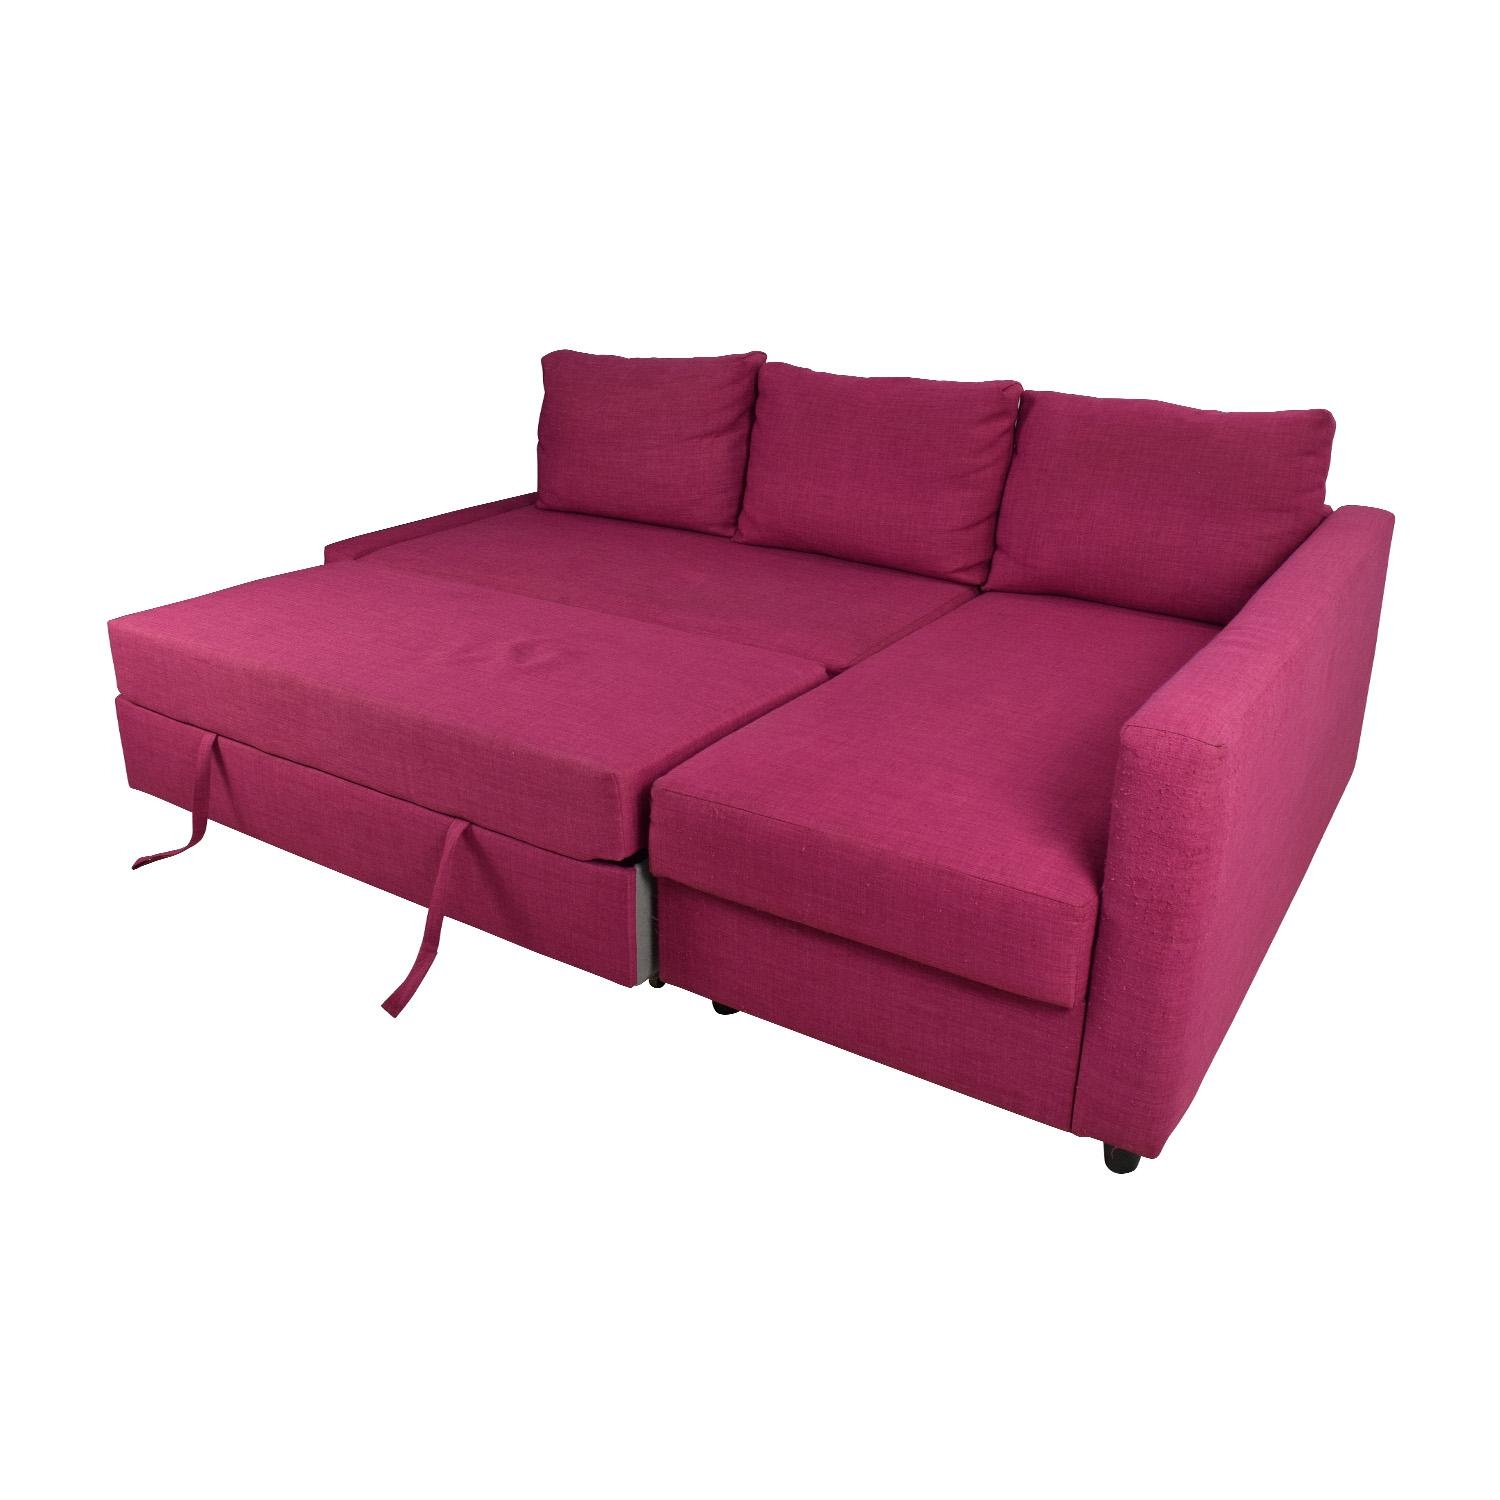 sleeper sofa best crate and barrel sectional sale 20 ikea loveseat sofas ideas